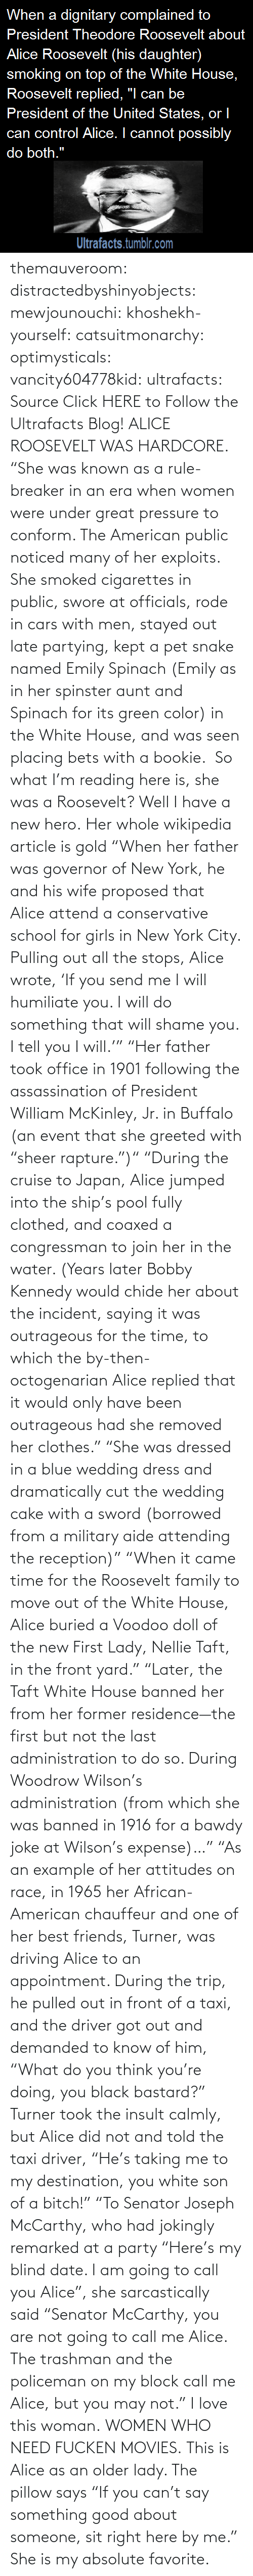 "Older: themauveroom: distractedbyshinyobjects:  mewjounouchi:  khoshekh-yourself:  catsuitmonarchy:  optimysticals:  vancity604778kid:  ultrafacts:     Source Click HERE to Follow the Ultrafacts Blog!     ALICE ROOSEVELT WAS HARDCORE. ""She was known as a rule-breaker in an era when women were under great pressure to conform. The American public noticed many of her exploits. She smoked cigarettes in public, swore at officials, rode in cars with men, stayed out late partying, kept a pet snake named Emily Spinach (Emily as in her spinster aunt and Spinach for its green color) in the White House, and was seen placing bets with a bookie.    So what I'm reading here is, she was a Roosevelt?  Well I have a new hero.  Her whole wikipedia article is gold ""When her father was governor of New York, he and his wife proposed that Alice attend a conservative school for girls in New York City. Pulling out all the stops, Alice wrote, 'If you send me I will humiliate you. I will do something that will shame you. I tell you I will.'"" ""Her father took office in 1901 following the assassination of President William McKinley, Jr. in Buffalo (an event that she greeted with ""sheer rapture."")"" ""During the cruise to Japan, Alice jumped into the ship's pool fully clothed, and coaxed a congressman to join her in the water. (Years later Bobby Kennedy would chide her about the incident, saying it was outrageous for the time, to which the by-then-octogenarian Alice replied that it would only have been outrageous had she removed her clothes."" ""She was dressed in a blue wedding dress and dramatically cut the wedding cake with a sword (borrowed from a military aide attending the reception)"" ""When it came time for the Roosevelt family to move out of the White House, Alice buried a Voodoo doll of the new First Lady, Nellie Taft, in the front yard."" ""Later, the Taft White House banned her from her former residence—the first but not the last administration to do so. During Woodrow Wilson's administration (from which she was banned in 1916 for a bawdy joke at Wilson's expense)…"" ""As an example of her attitudes on race, in 1965 her African-American chauffeur and one of her best friends, Turner, was driving Alice to an appointment. During the trip, he pulled out in front of a taxi, and the driver got out and demanded to know of him, ""What do you think you're doing, you black bastard?"" Turner took the insult calmly, but Alice did not and told the taxi driver, ""He's taking me to my destination, you white son of a bitch!"" ""To Senator Joseph McCarthy, who had jokingly remarked at a party ""Here's my blind date. I am going to call you Alice"", she sarcastically said ""Senator McCarthy, you are not going to call me Alice. The trashman and the policeman on my block call me Alice, but you may not.""  I love this woman.  WOMEN WHO NEED FUCKEN MOVIES.   This is Alice as an older lady. The pillow says ""If you can't say something good about someone, sit right here by me.""  She is my absolute favorite."